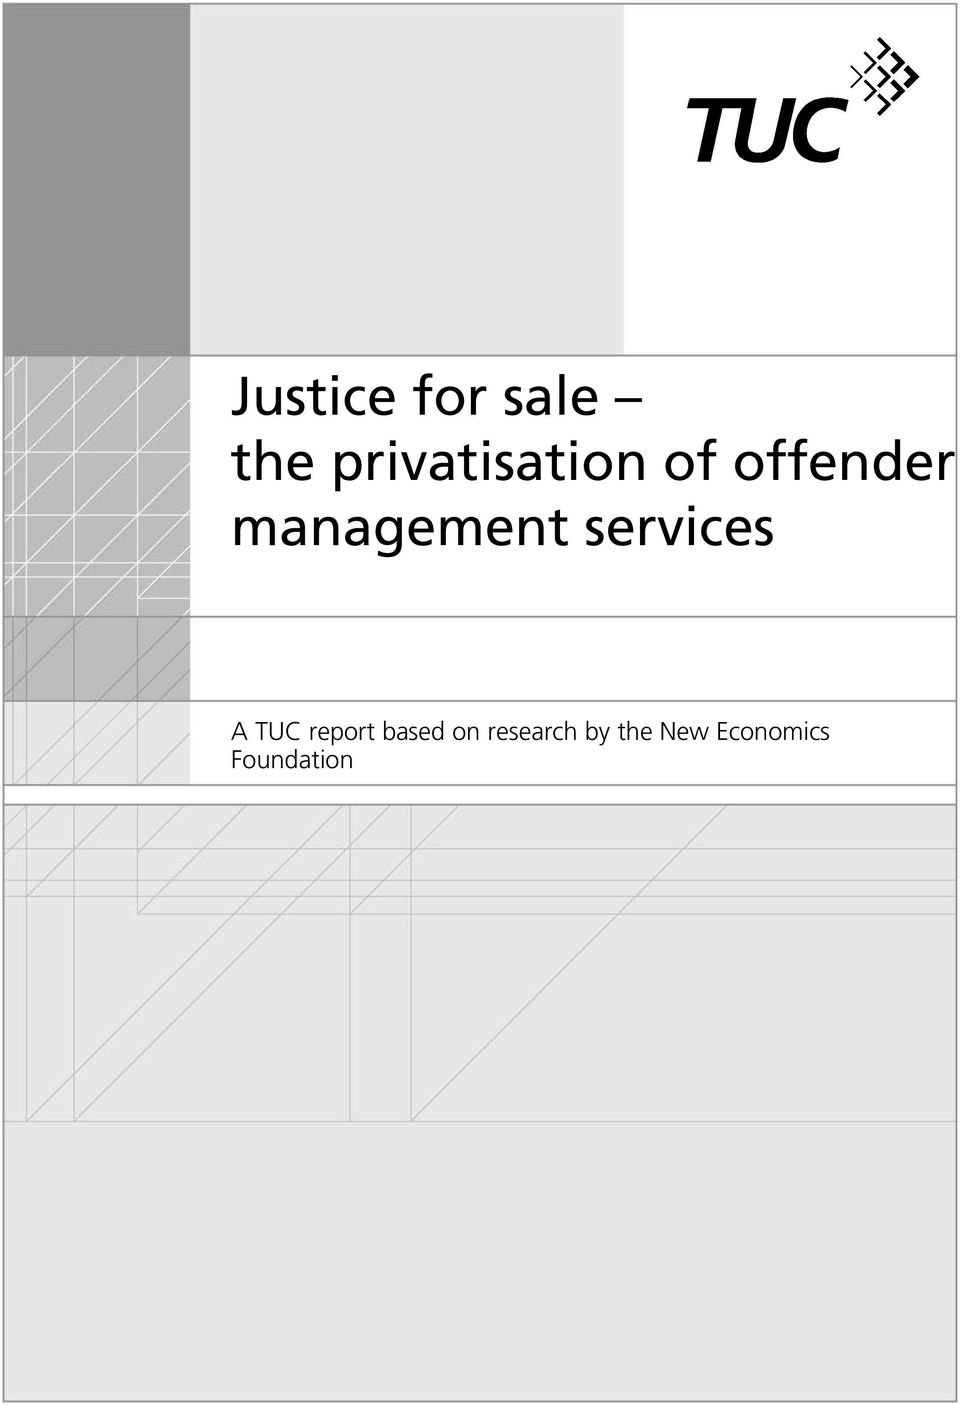 management services A TUC report